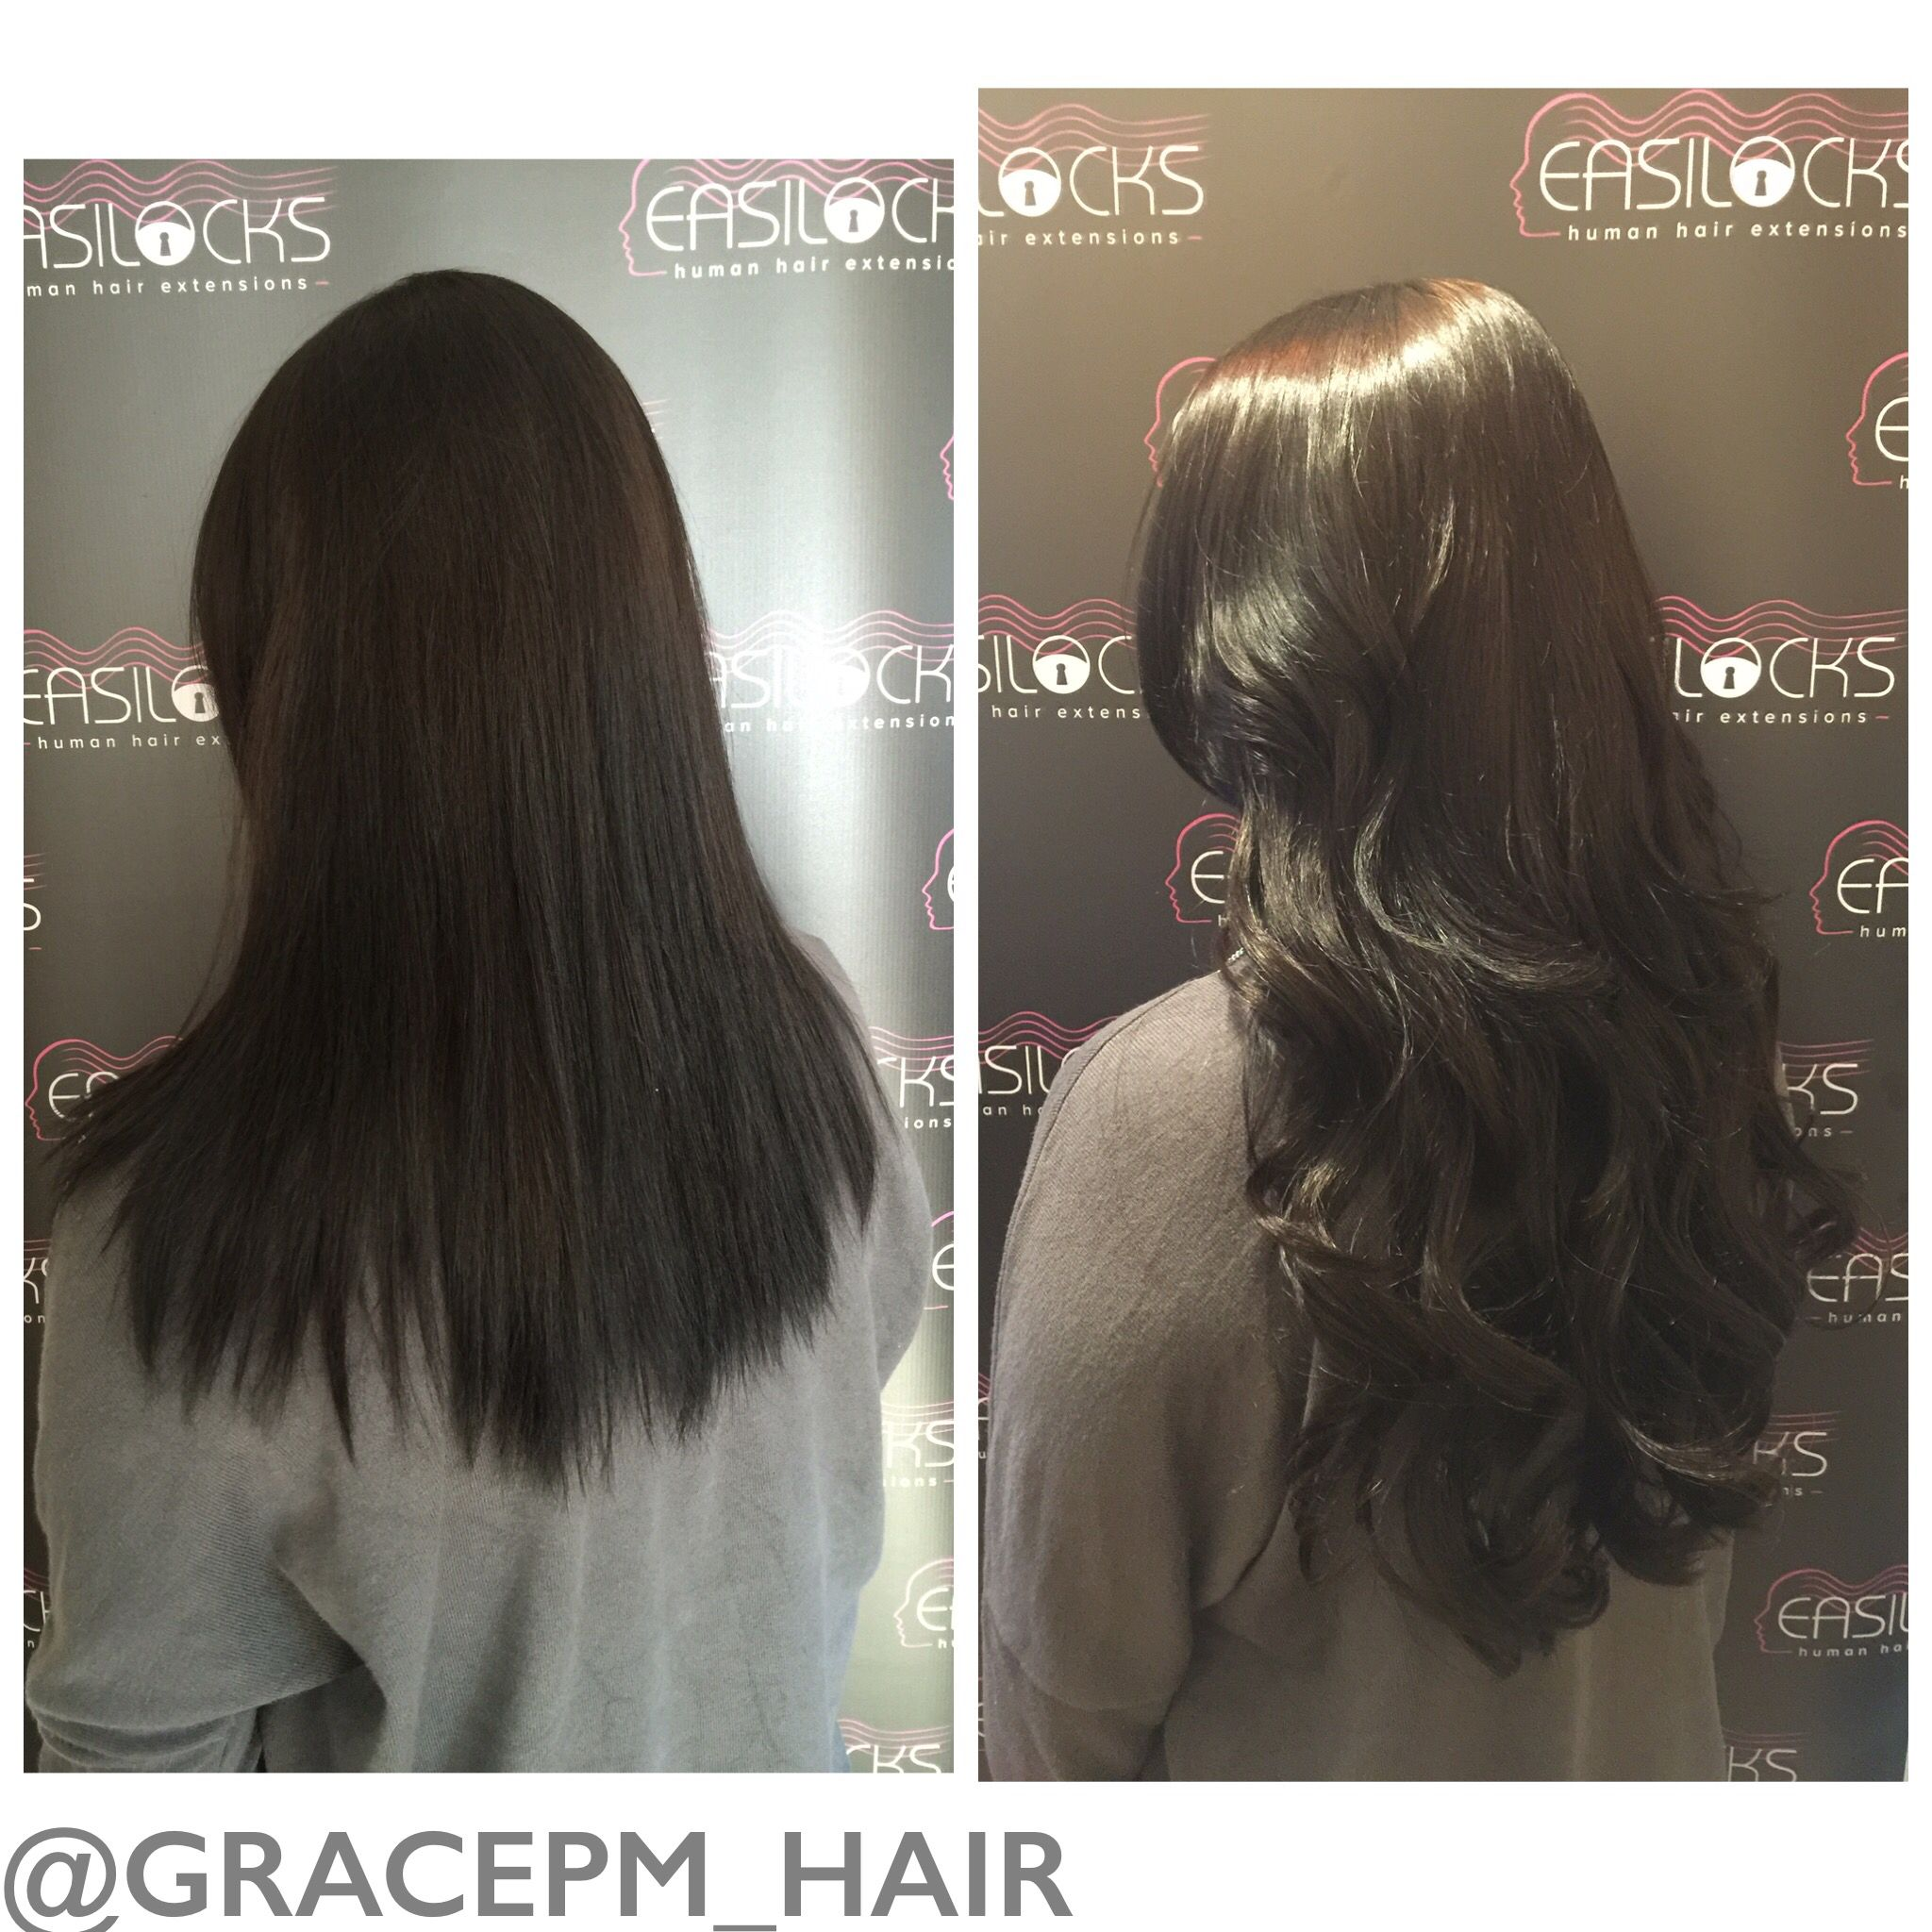 120 Strands Of Easilocks Hair Extensions In Darkest Brown